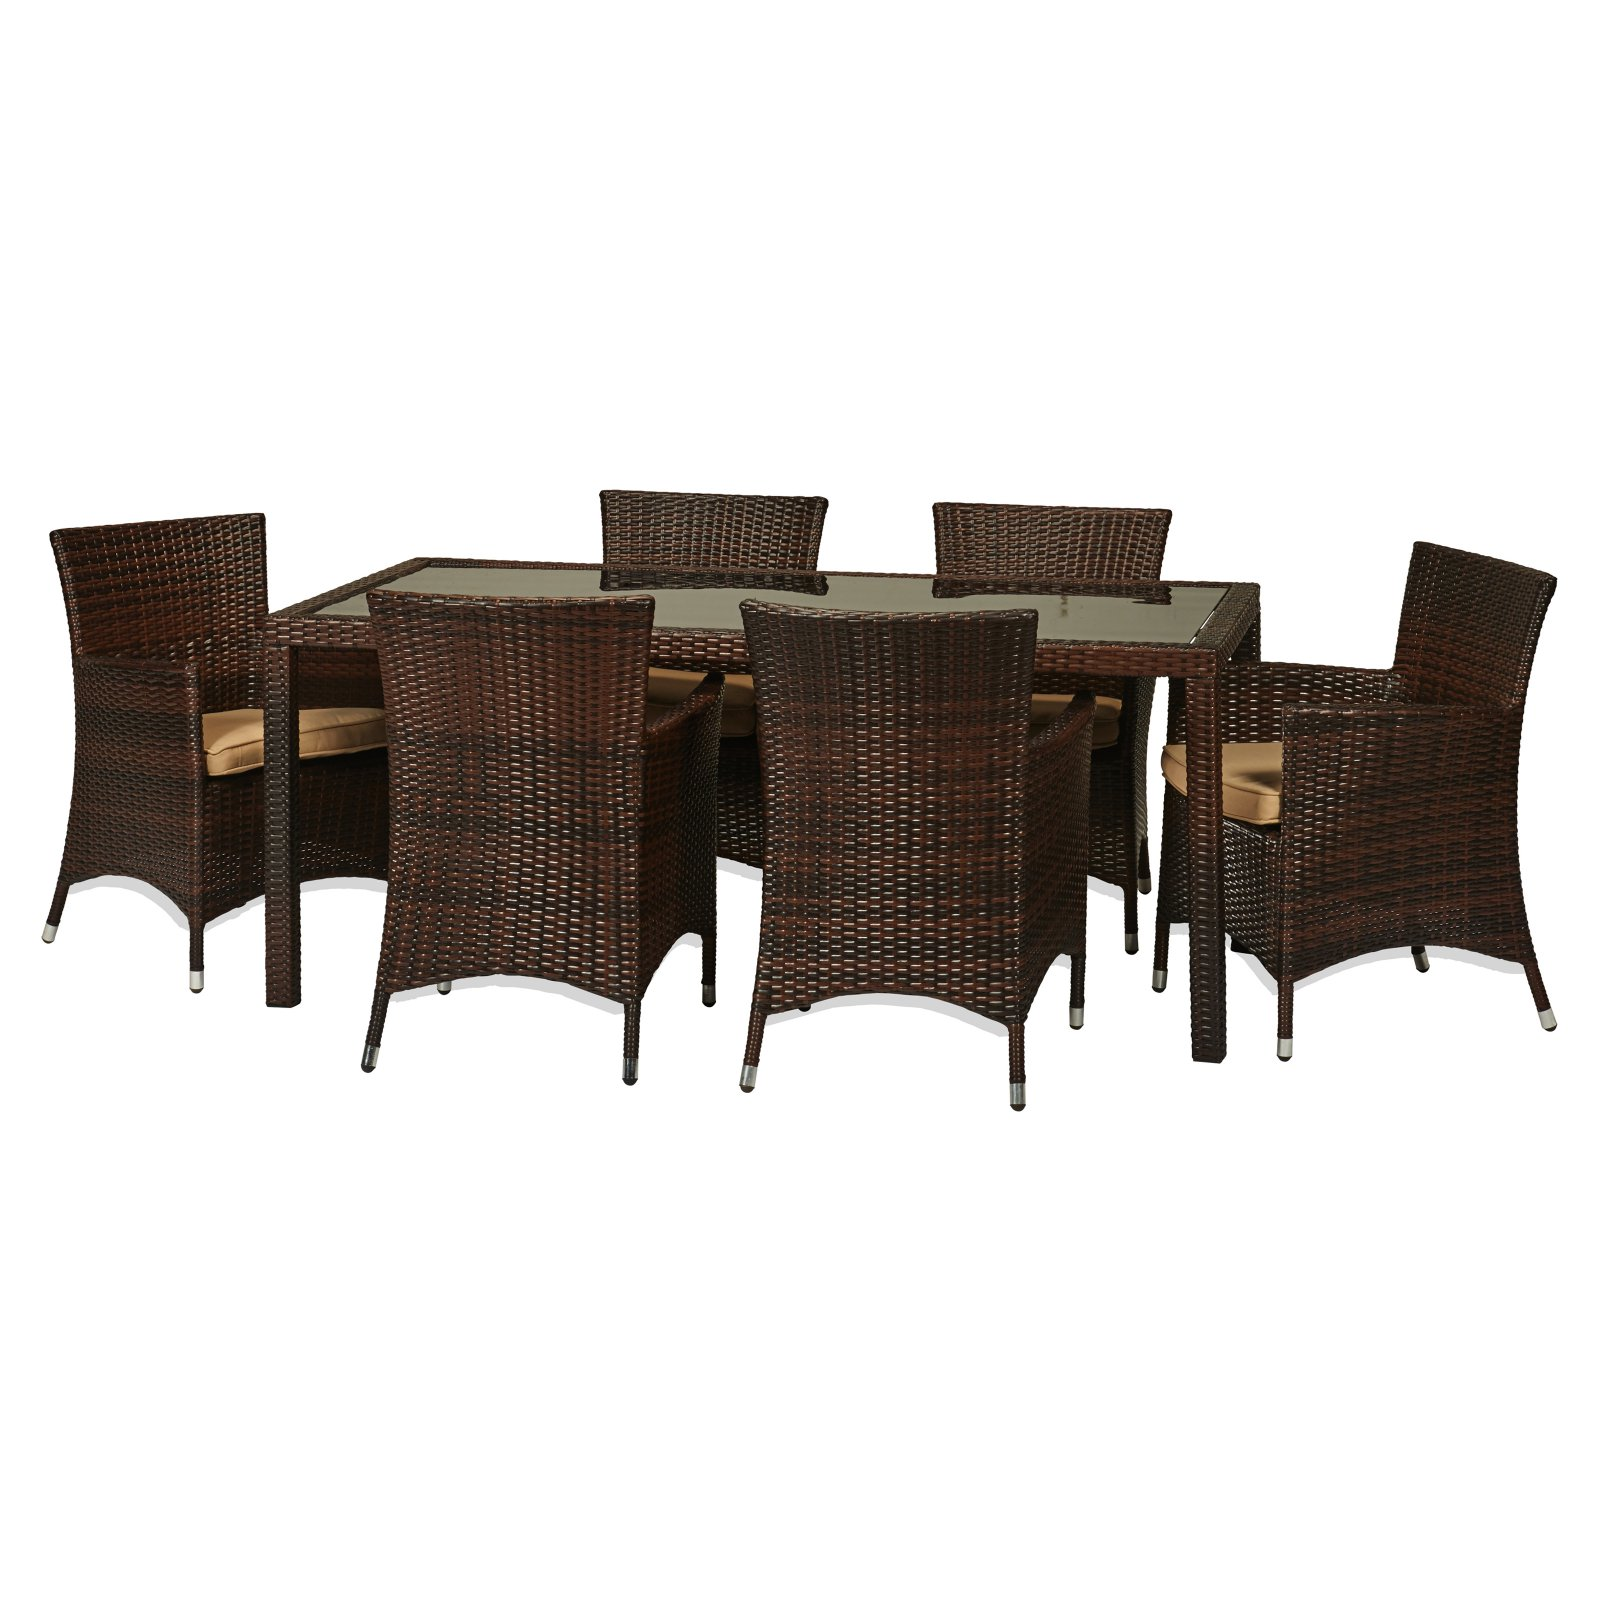 THY-HOM Rica 7 Piece Wicker Patio Dining Set